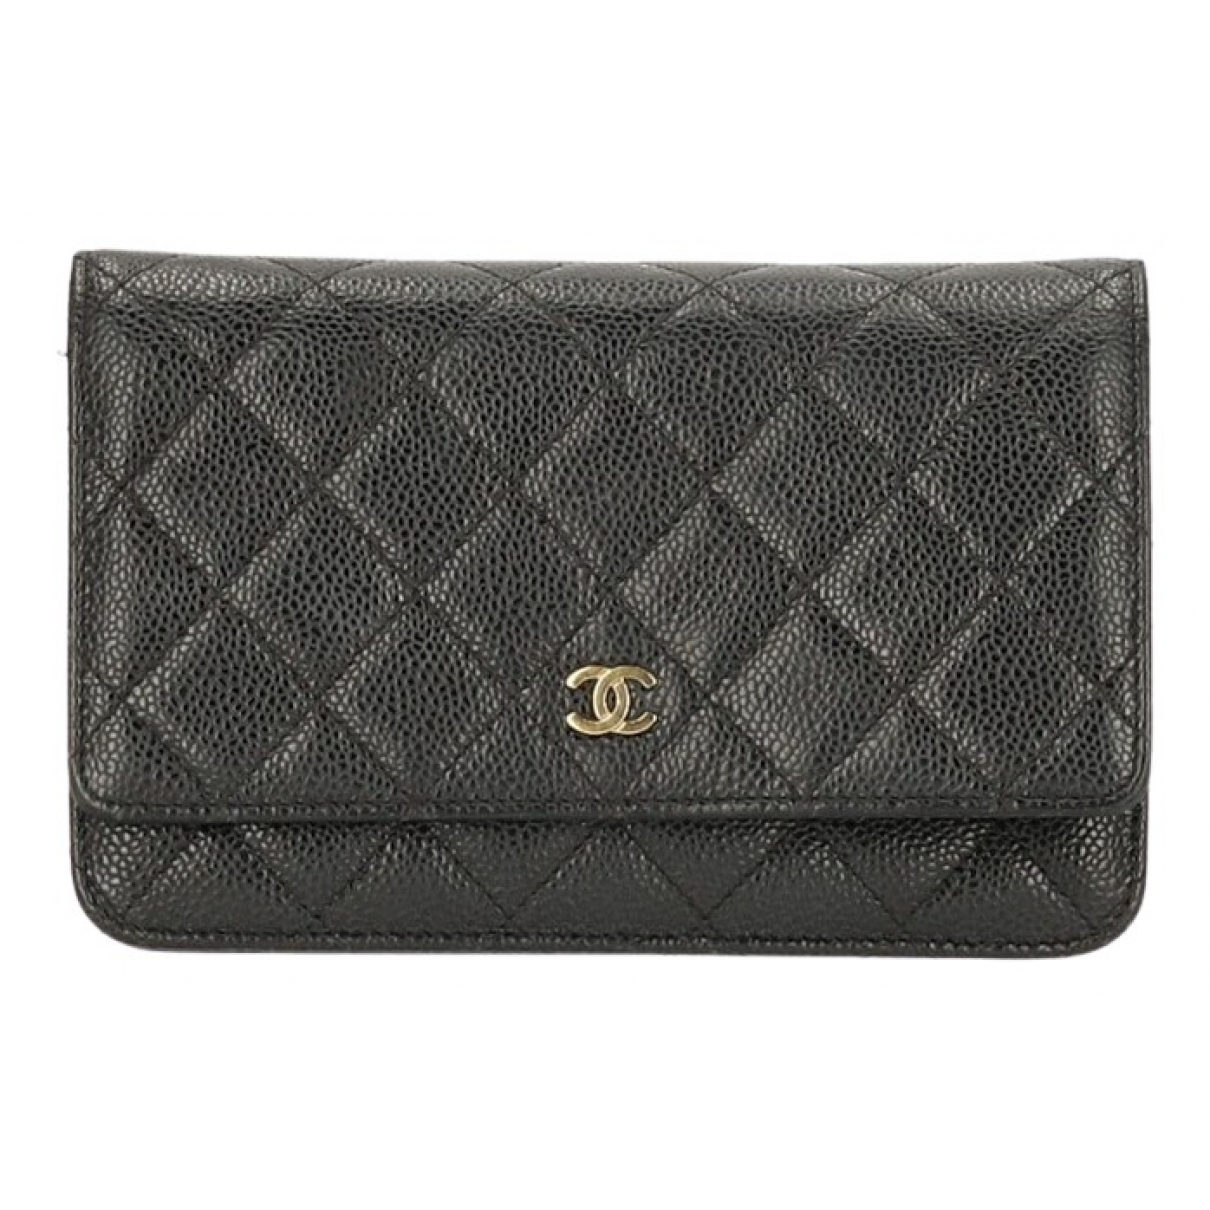 Chanel Wallet on Chain Black Leather handbag for Women \N